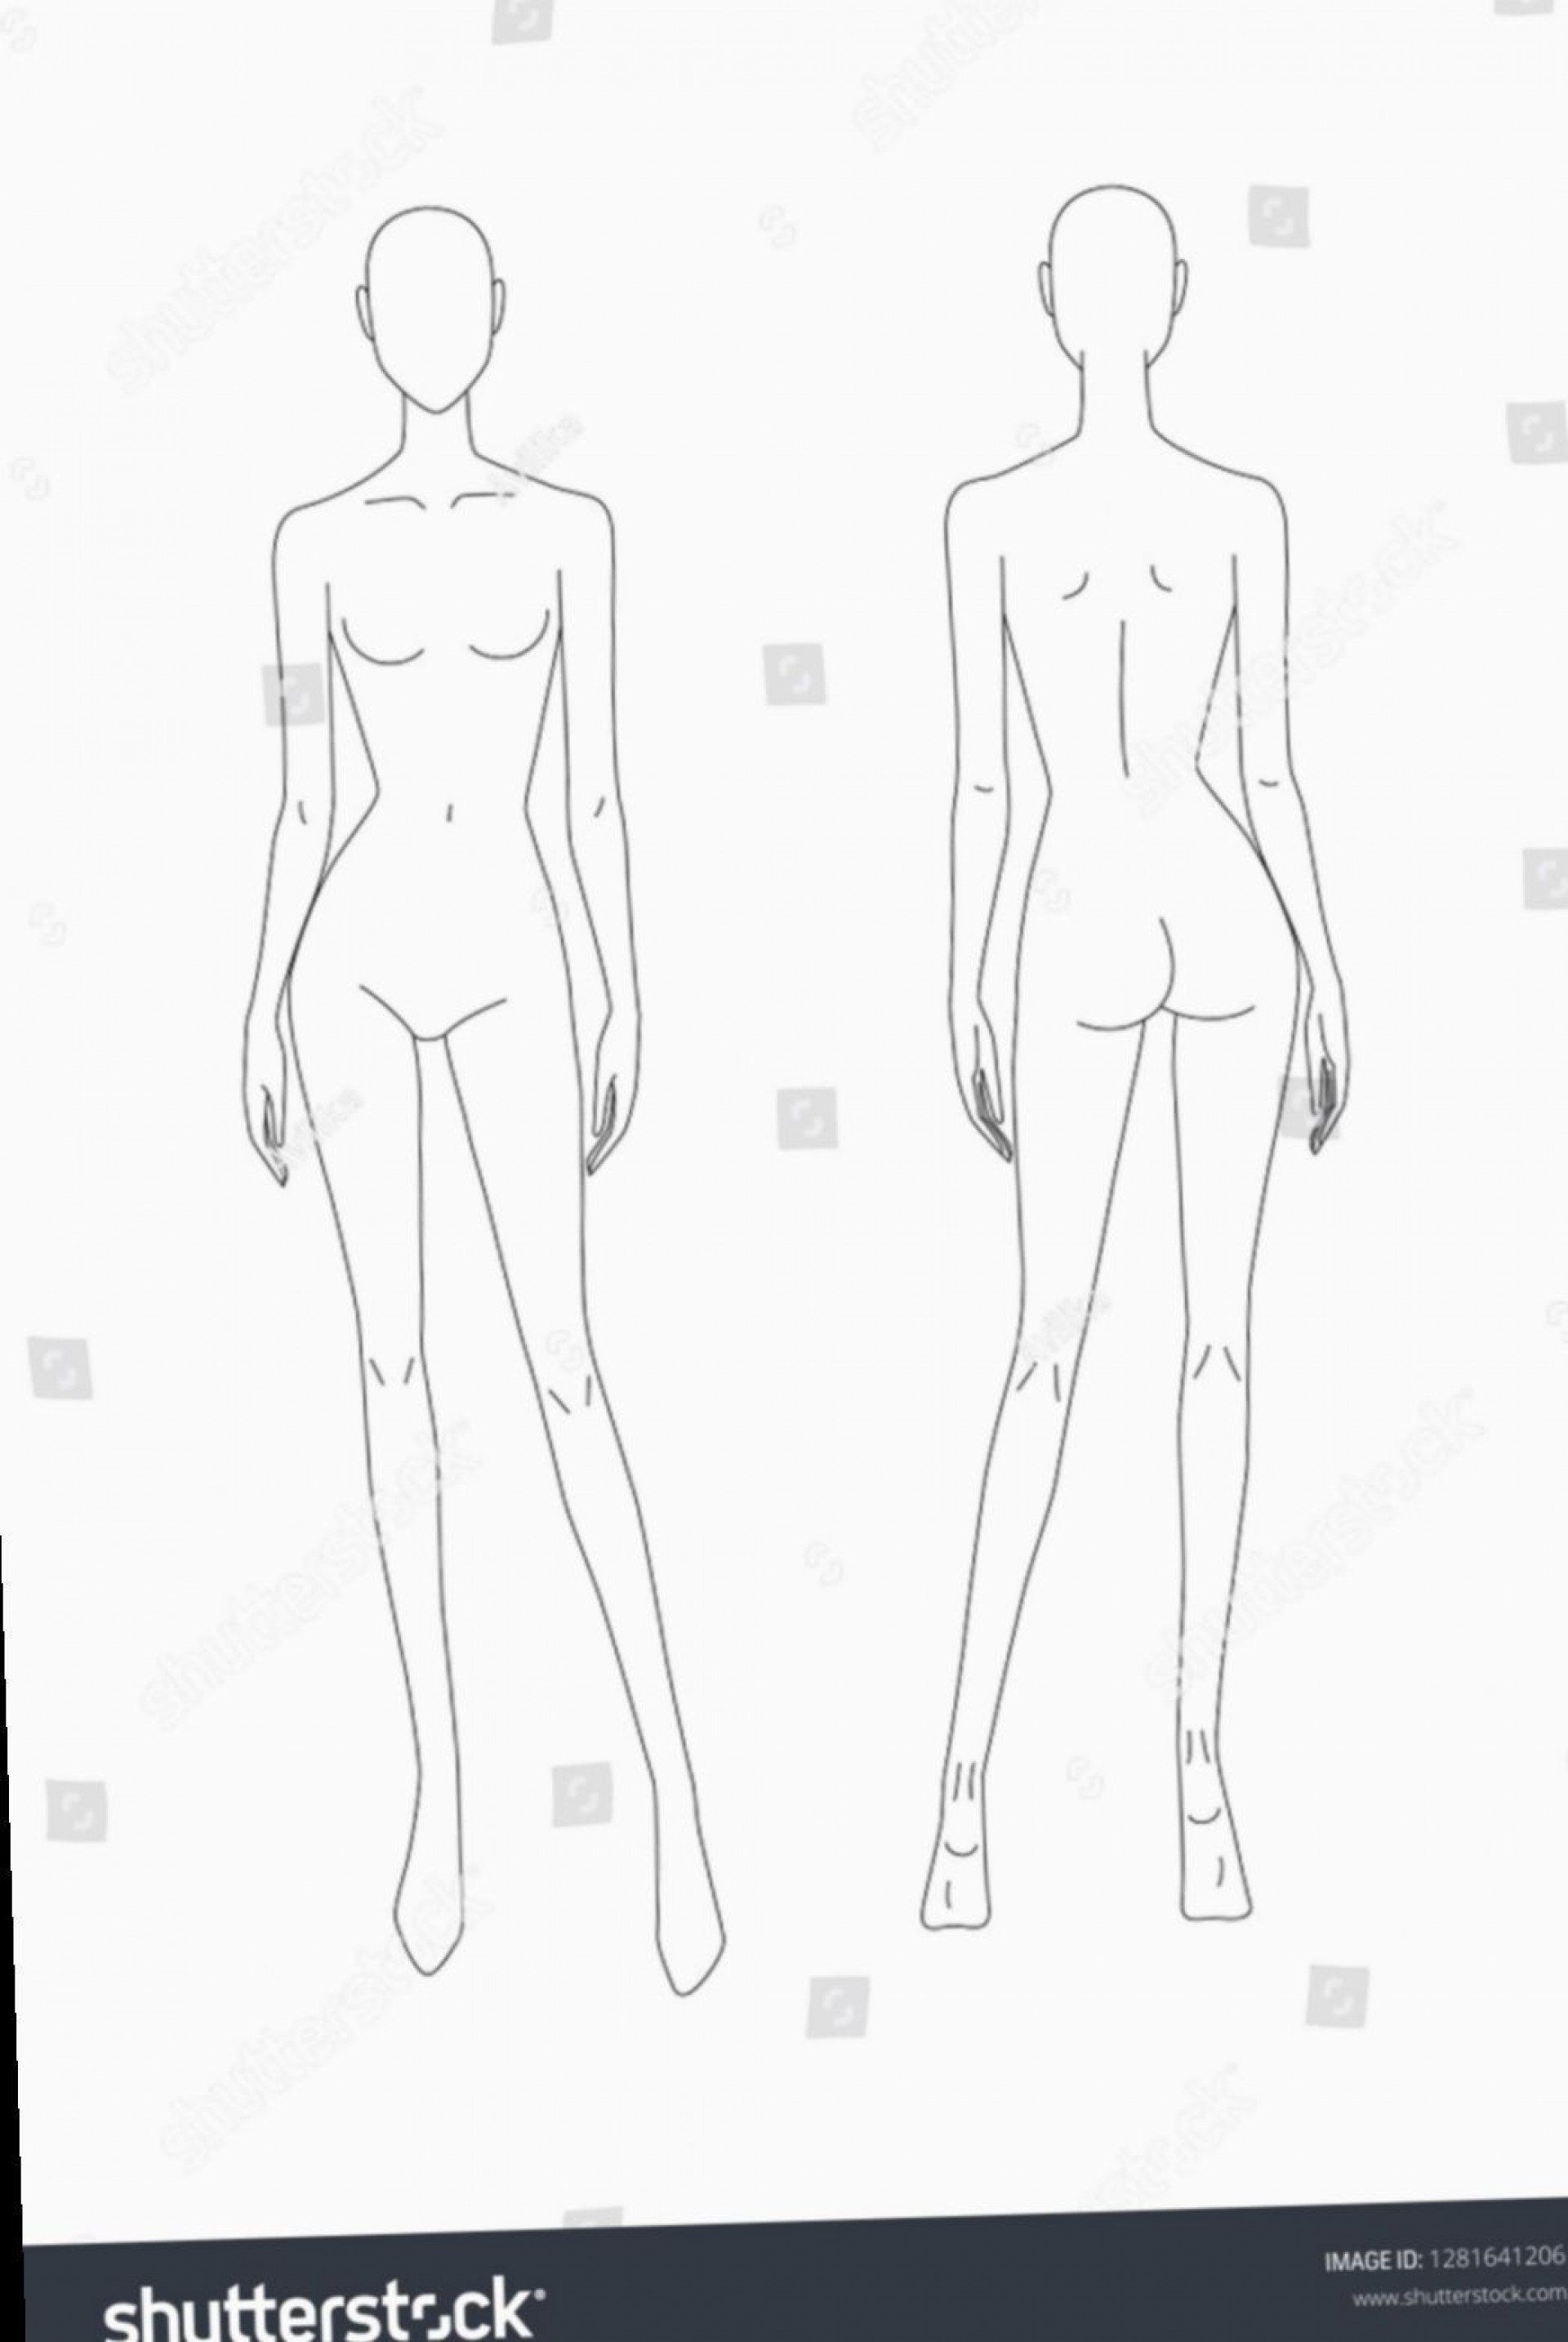 003 Shocking Body Template For Fashion Design Highest Quality  Female Male Human1920